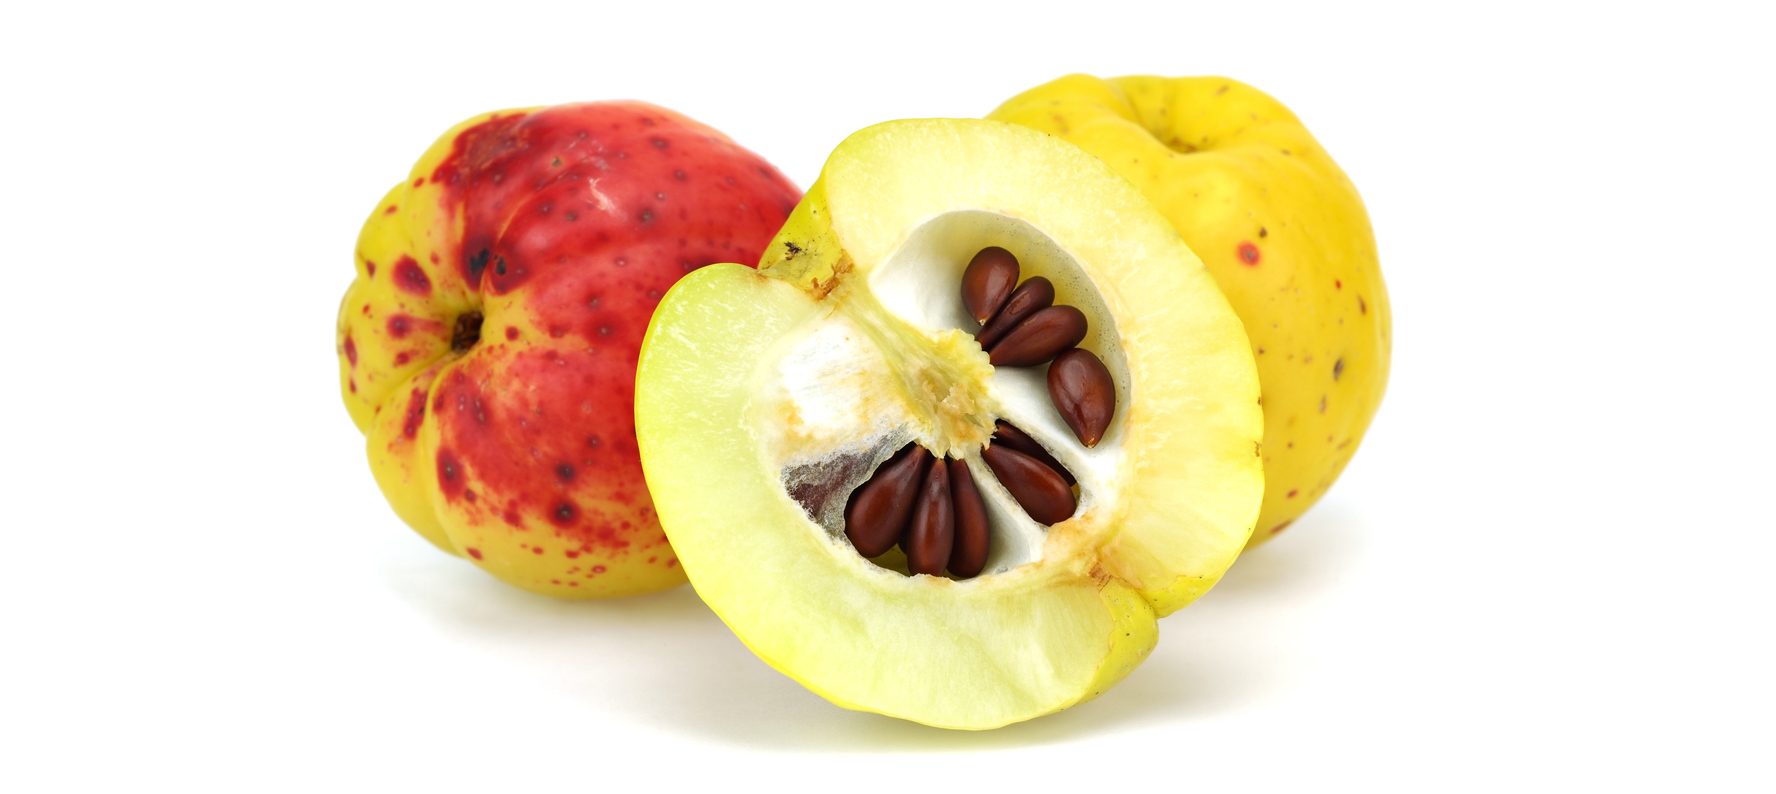 Apple seed oil is used in natural skin care products because it softens, protects, hydrates and nourishes the skin